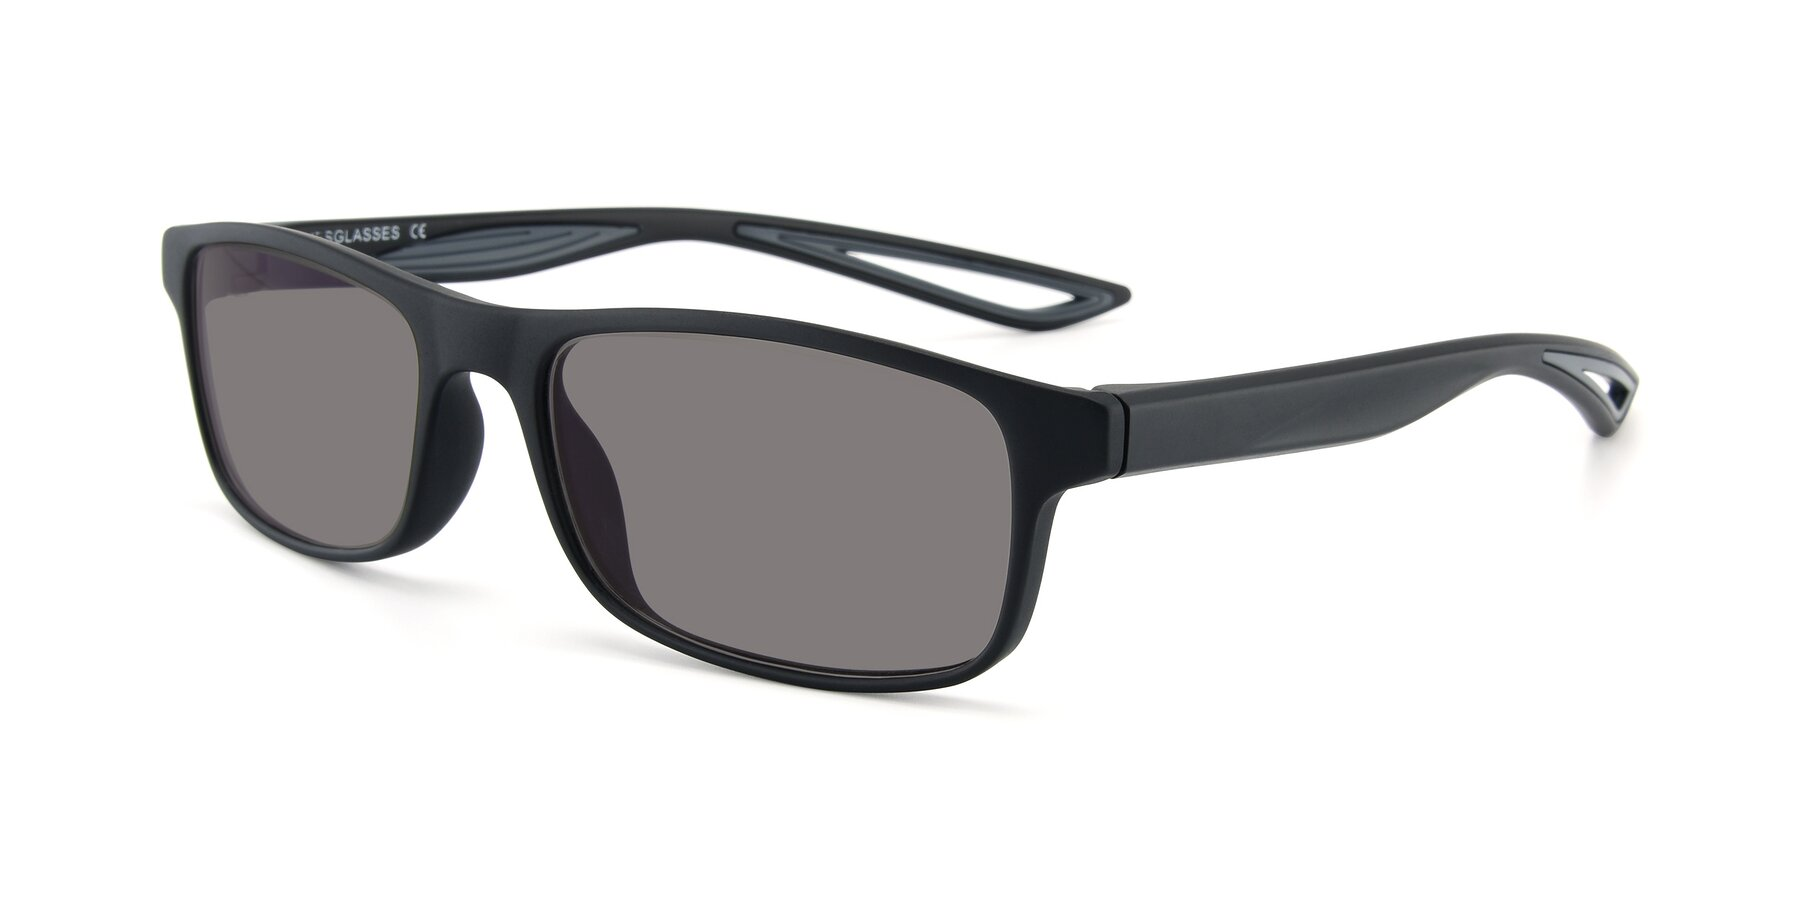 Angle of AC4679 in Matte Black-Gray with Medium Gray Tinted Lenses